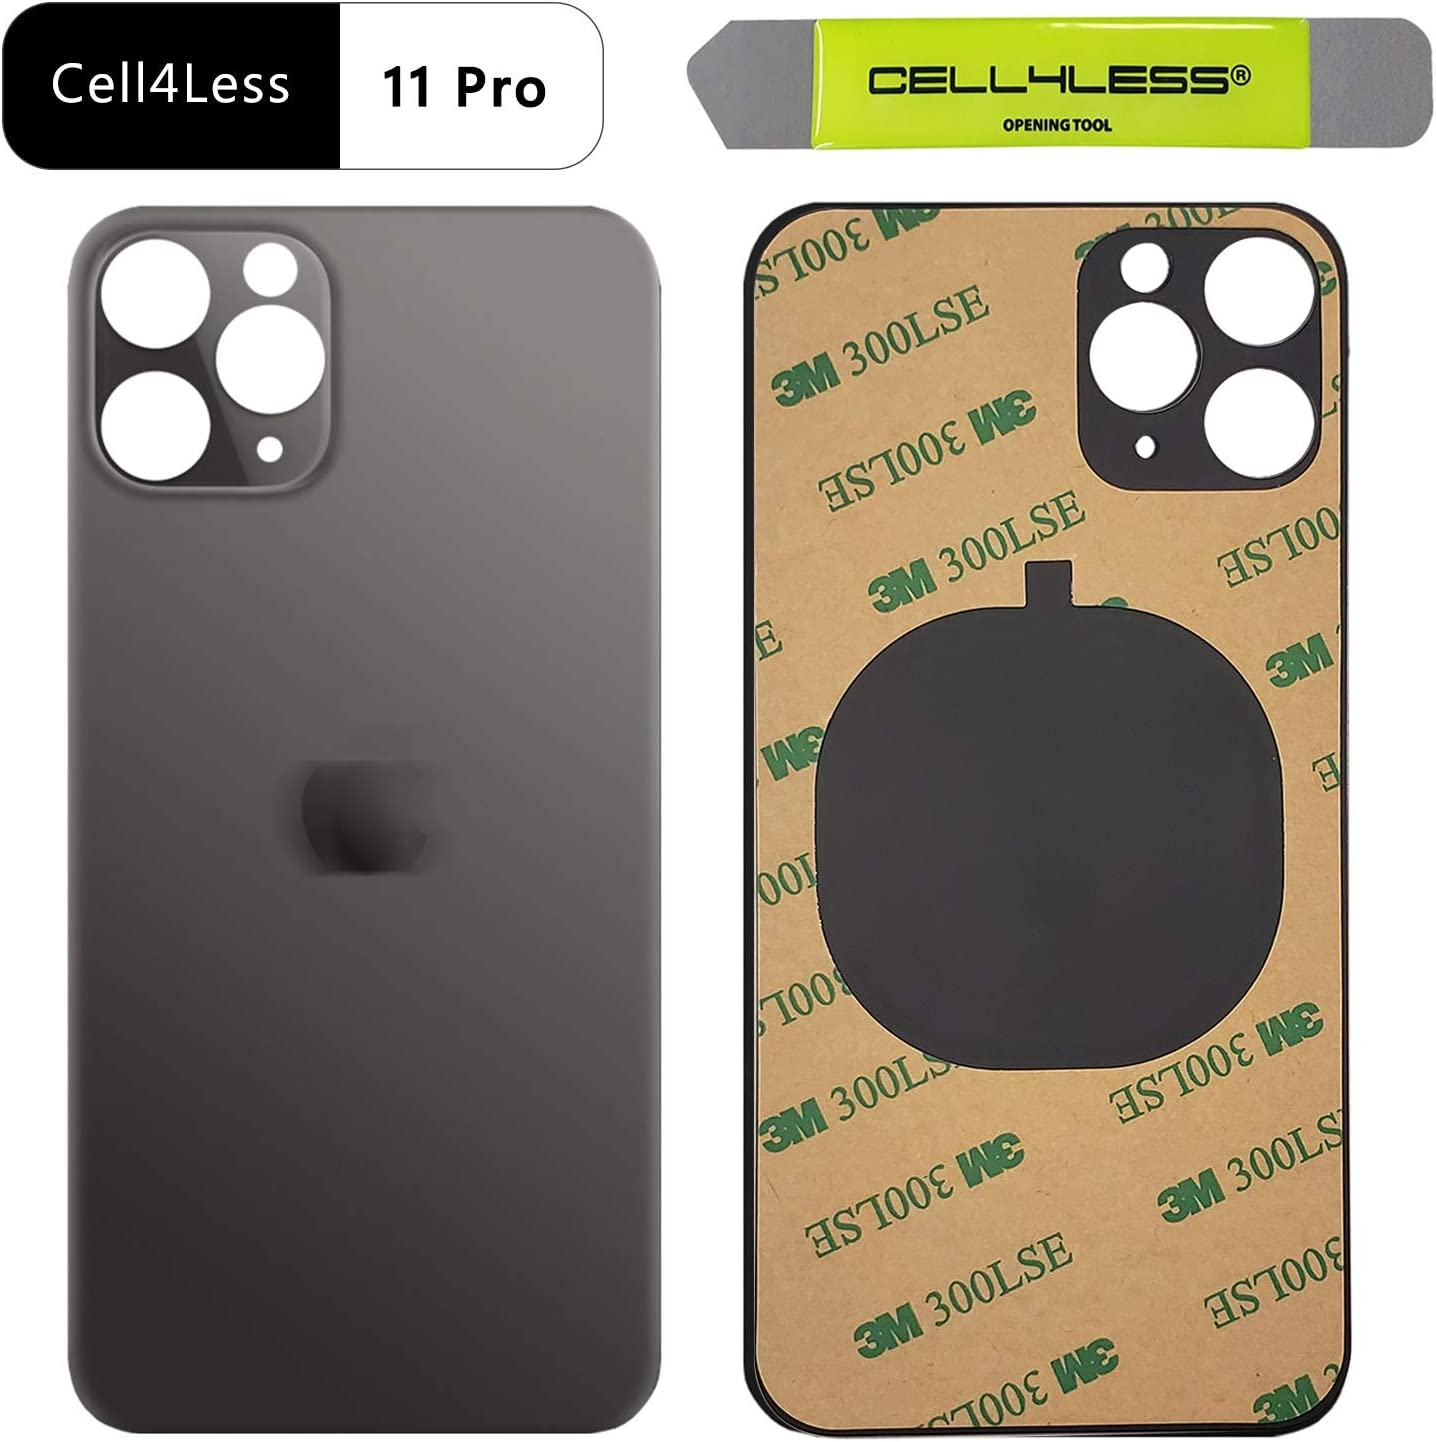 Cell4less Back Glass Compatible with The iPhone 11 Pro W//Full Body Adhesive Gold and Wide Camera Hole for Quicker Installation Removal Tool